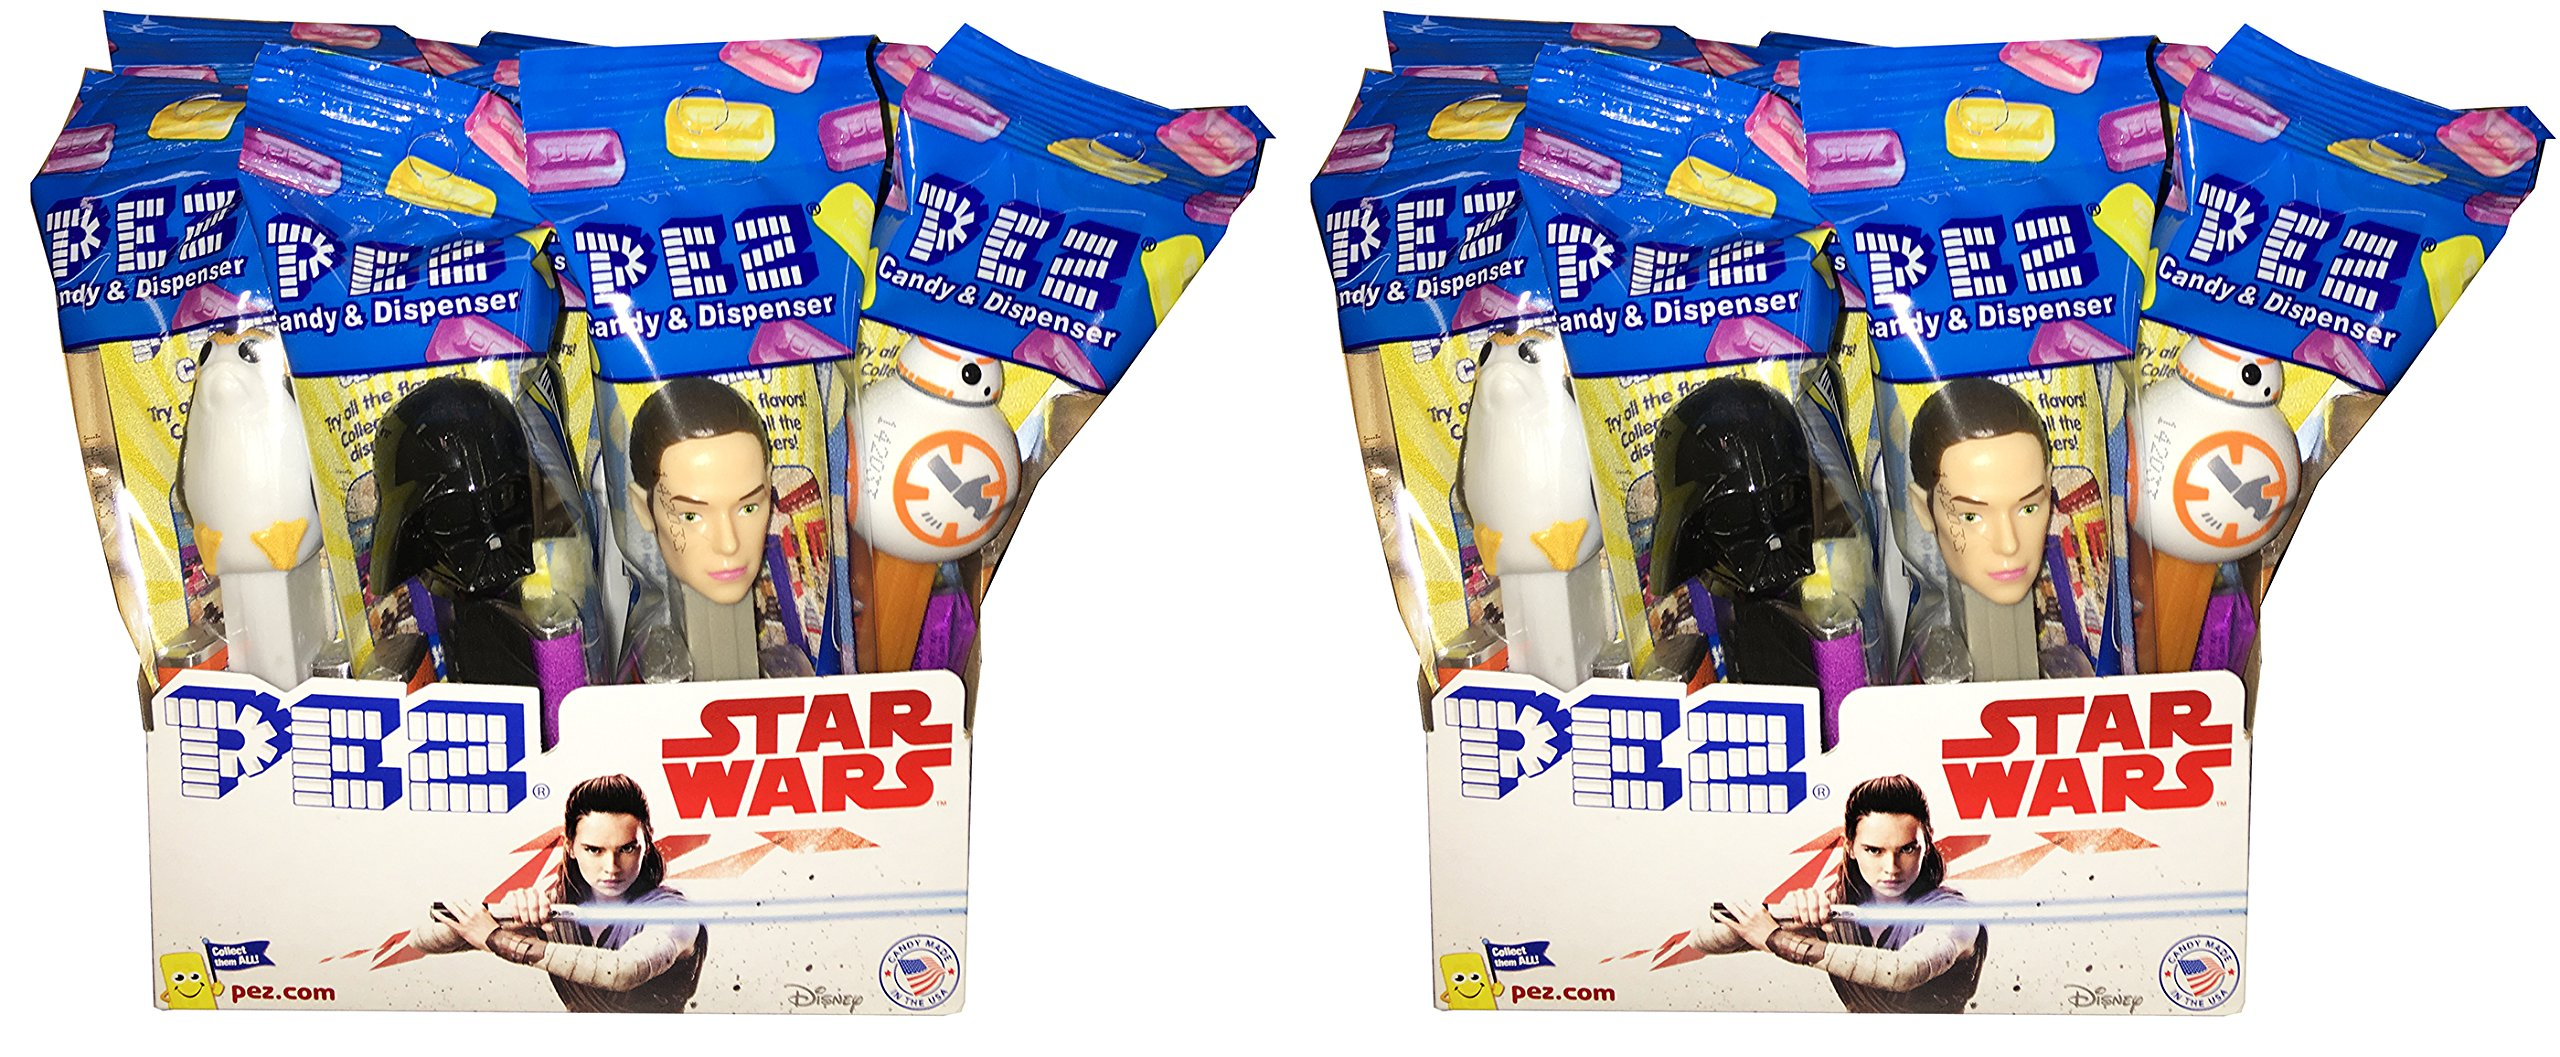 Star Wars PEZ Candy Dispensers - Pack of 24 by PEZ Candy